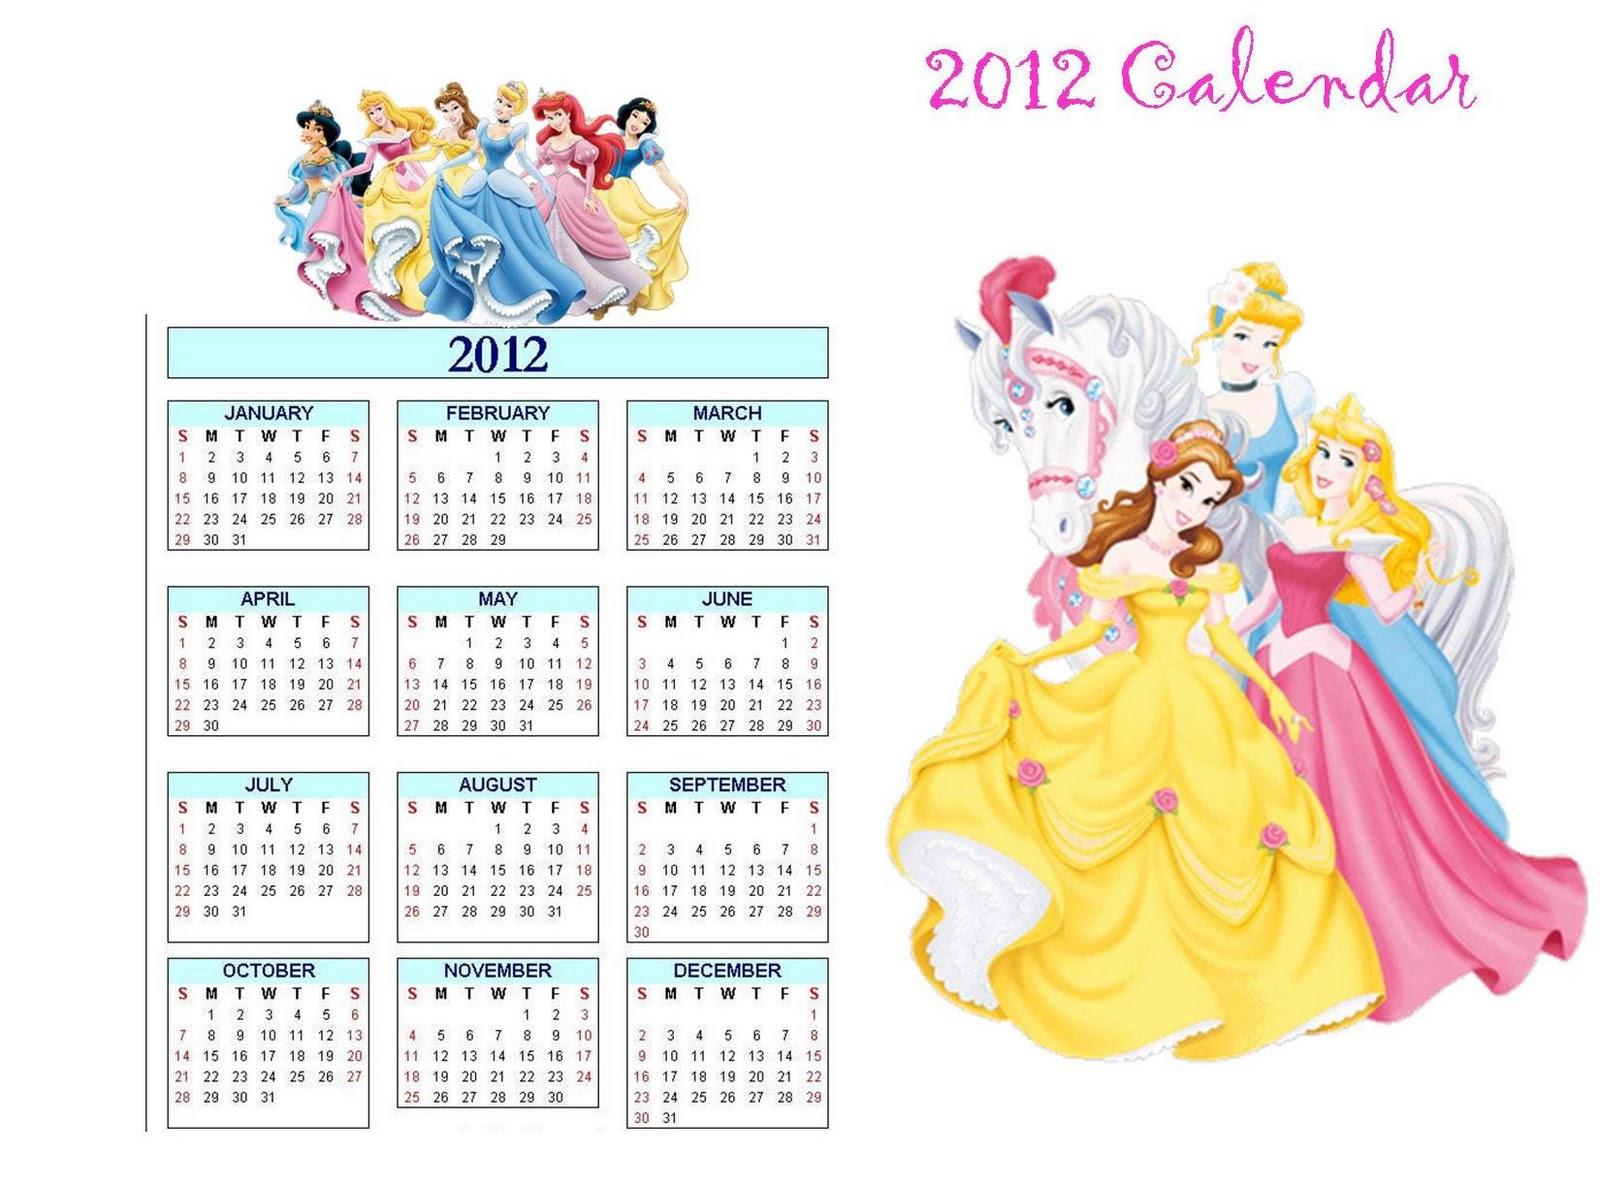 2012 Printable Disney Calendar For Kids: How To Make Your Own